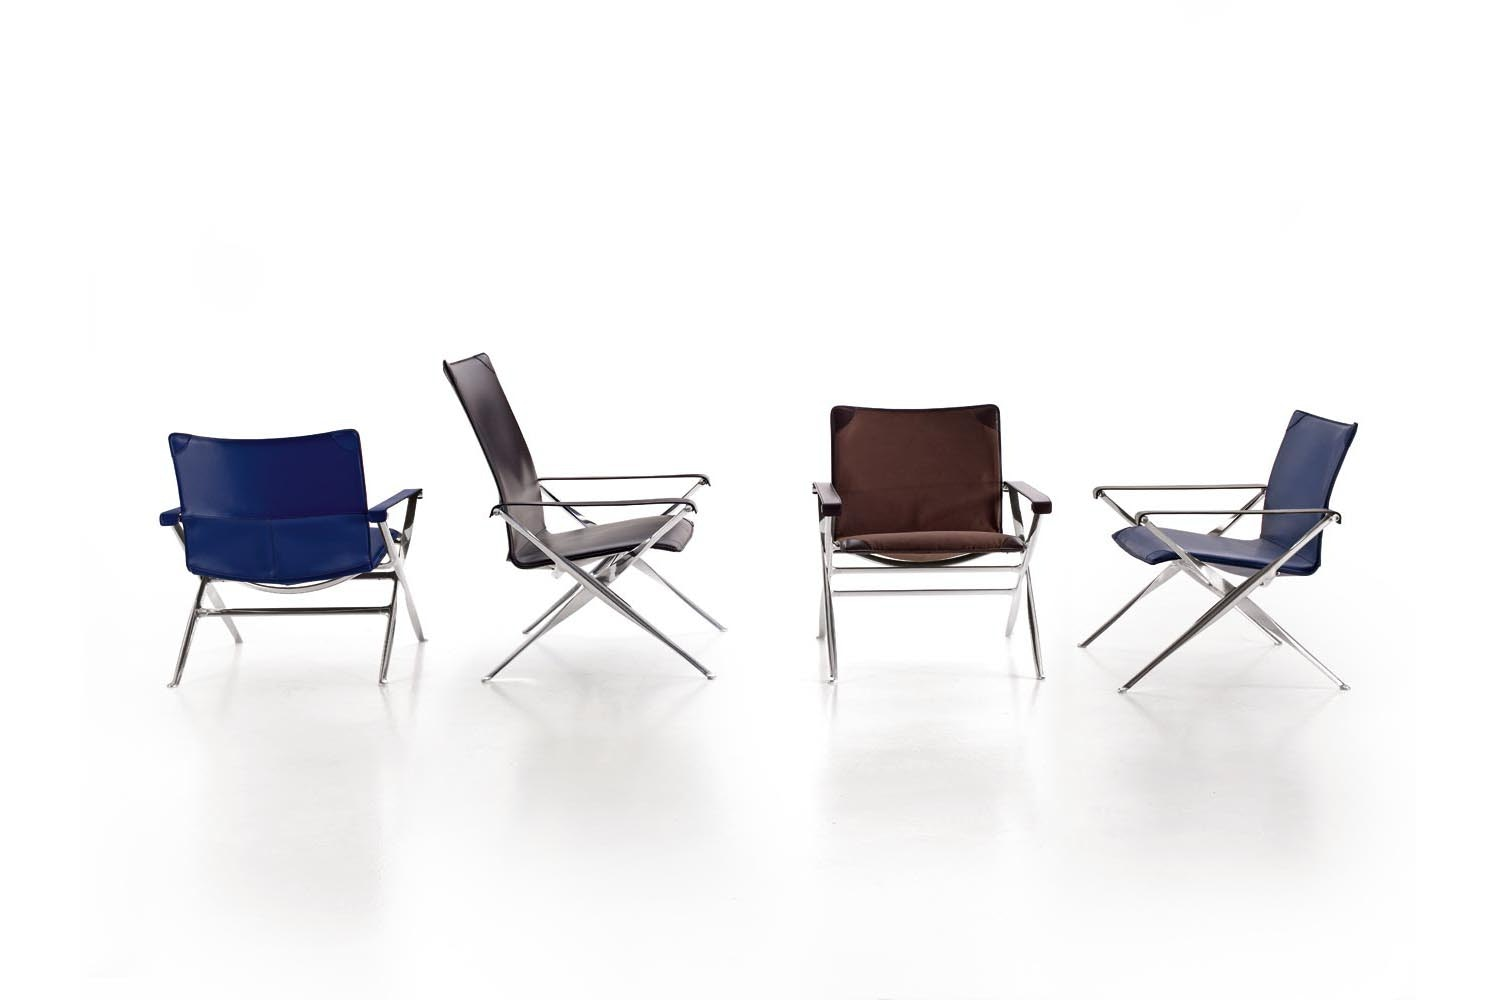 Beverly Armchair by Antonio Citterio for B&B Italia